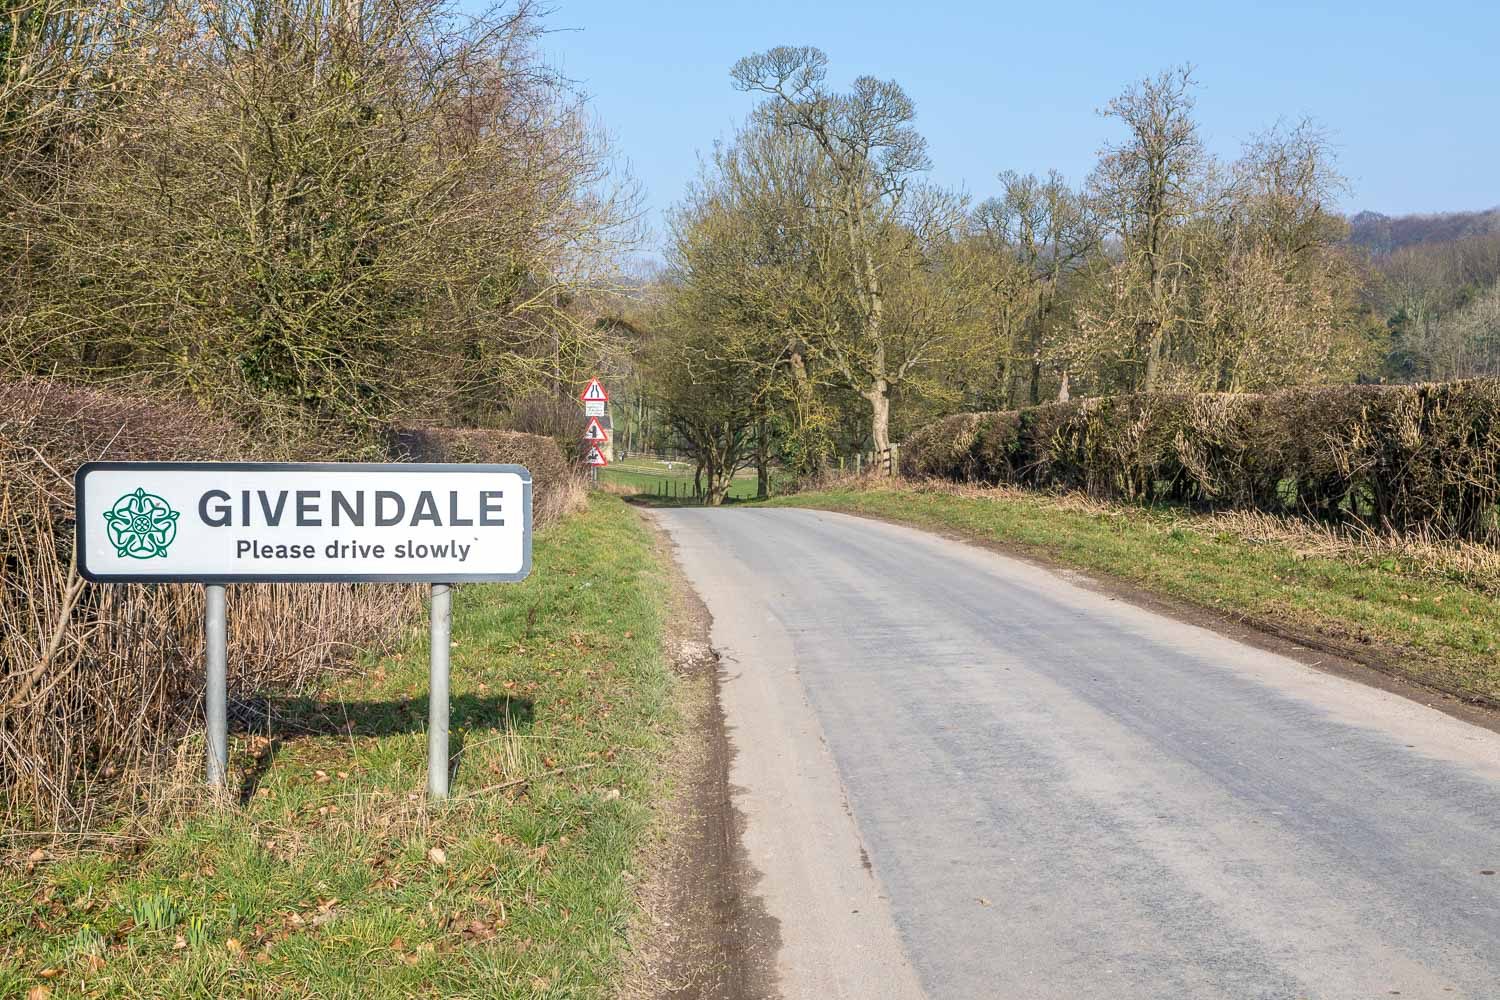 Chalkland Way, Great Givendale